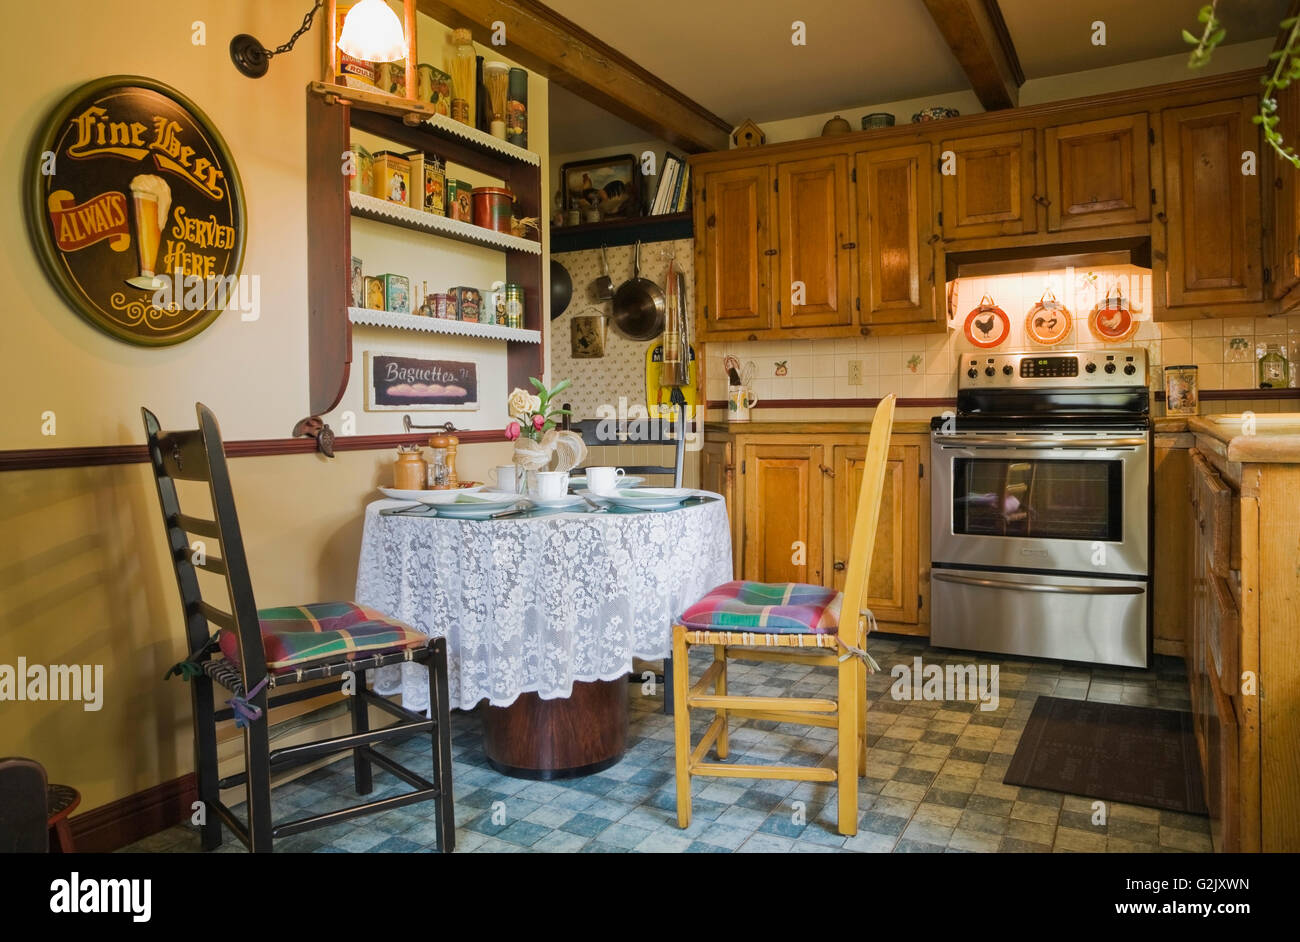 Wooden Antique Chairs Breakfast Table In Kitchen Inside Old Reconstructed 1850s Cottage Style Log Home Quebec Canada This Image